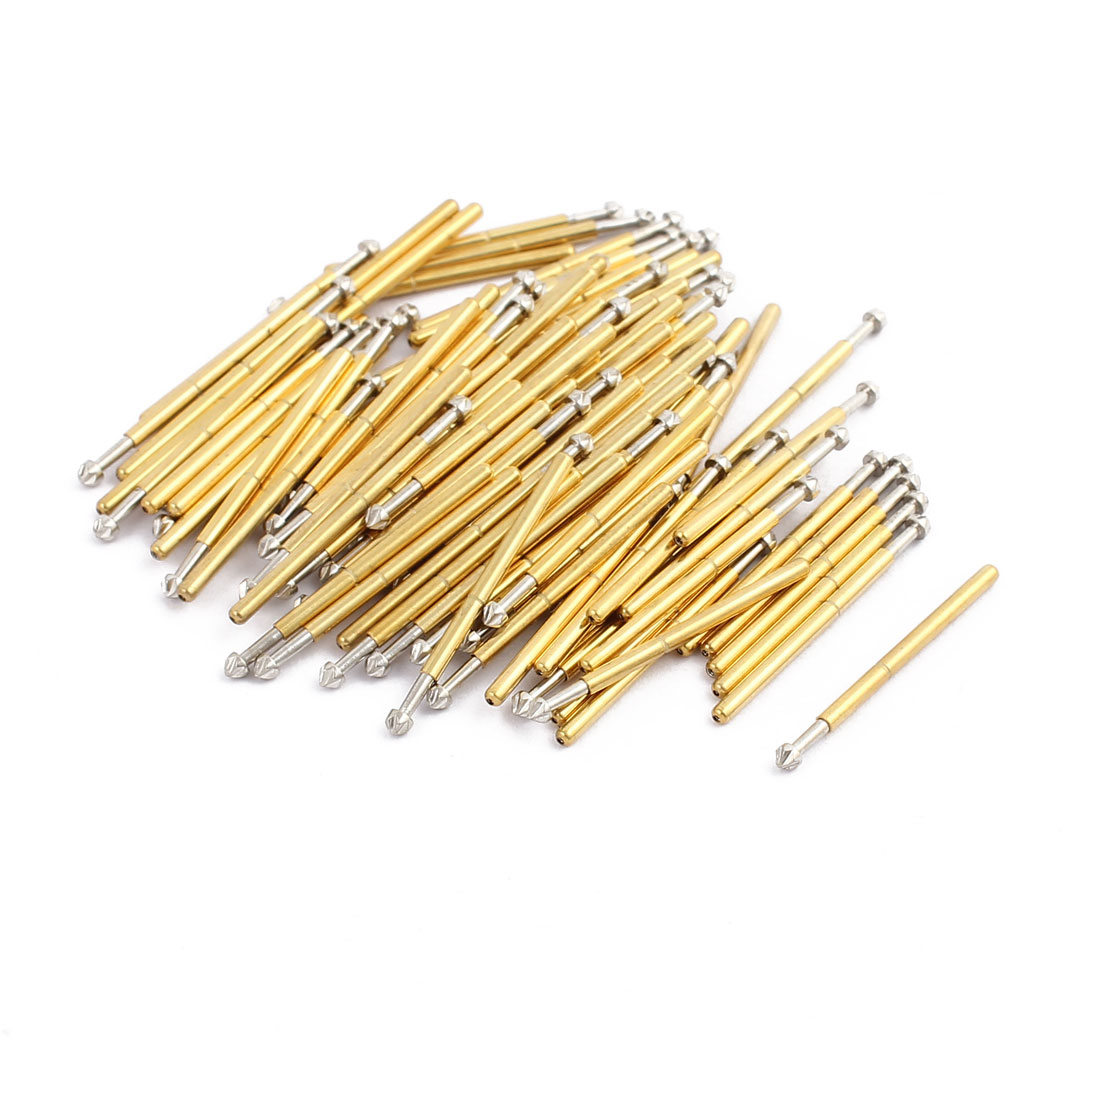 100pcs P160-LM3 1.36mm Dia 23mm Length Metal Spring Pressure Test Probe Needle